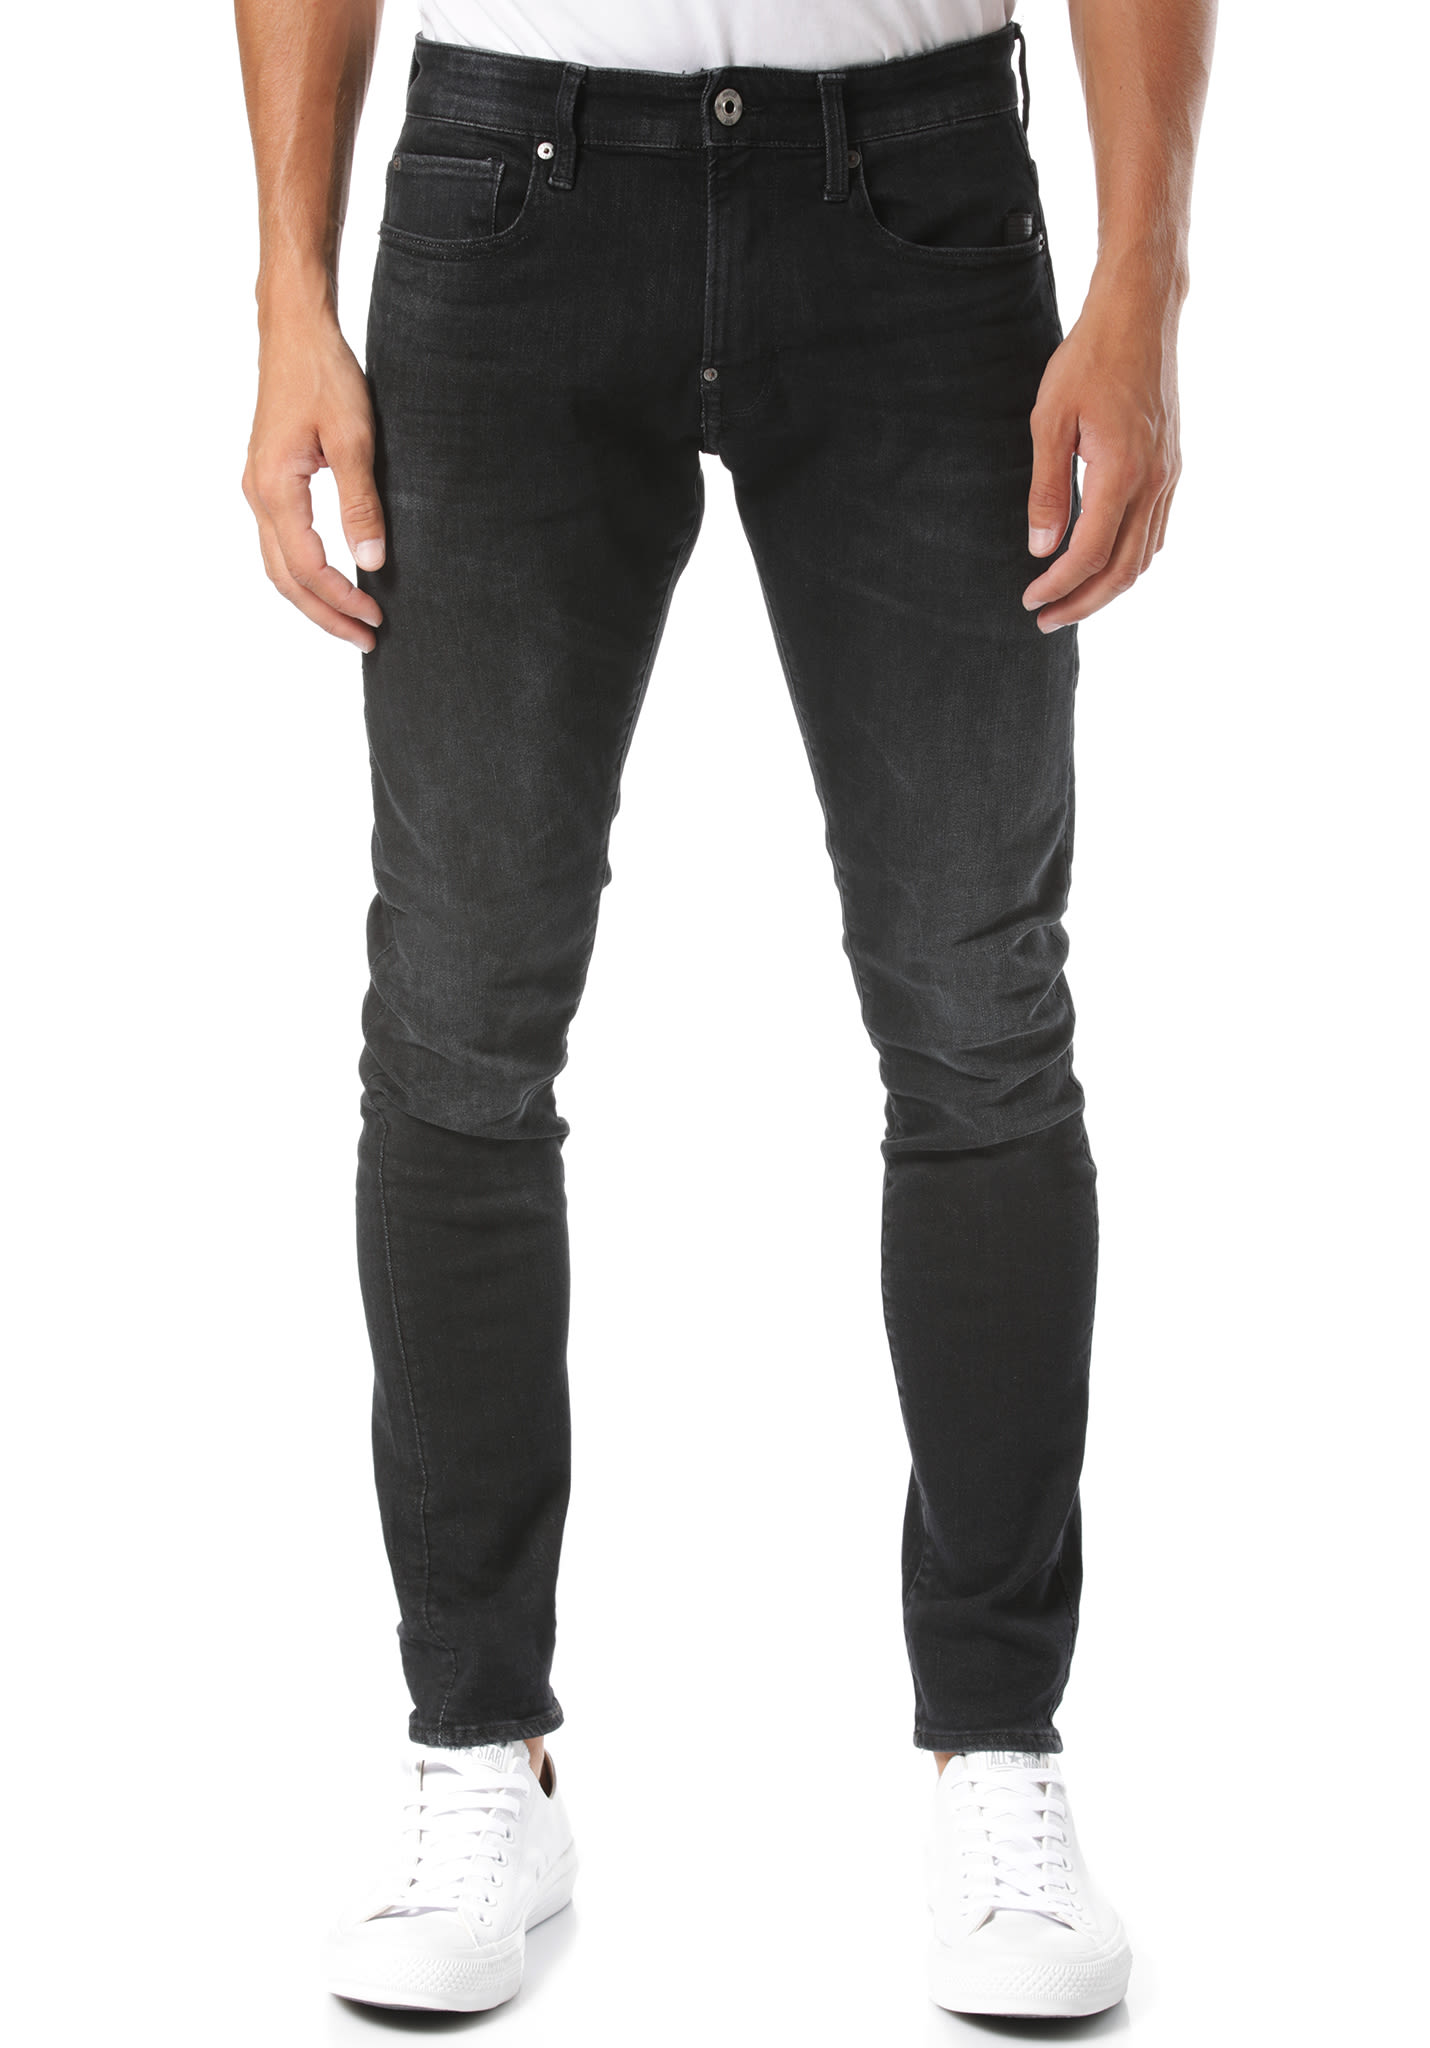 G STAR 3301 Slim Nero Black Stretch Jeans voor Heren Grijs